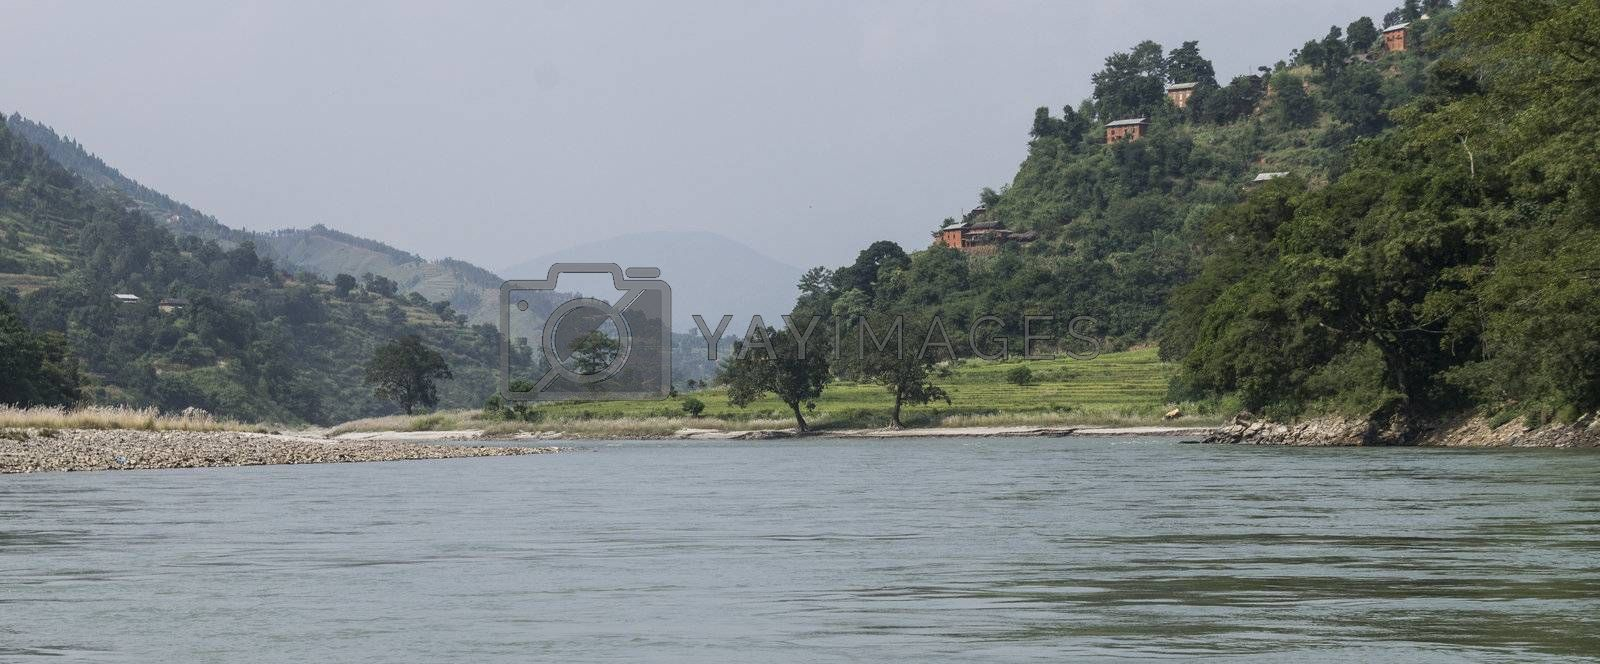 river in sun koshi, nepal with forest and small buildings